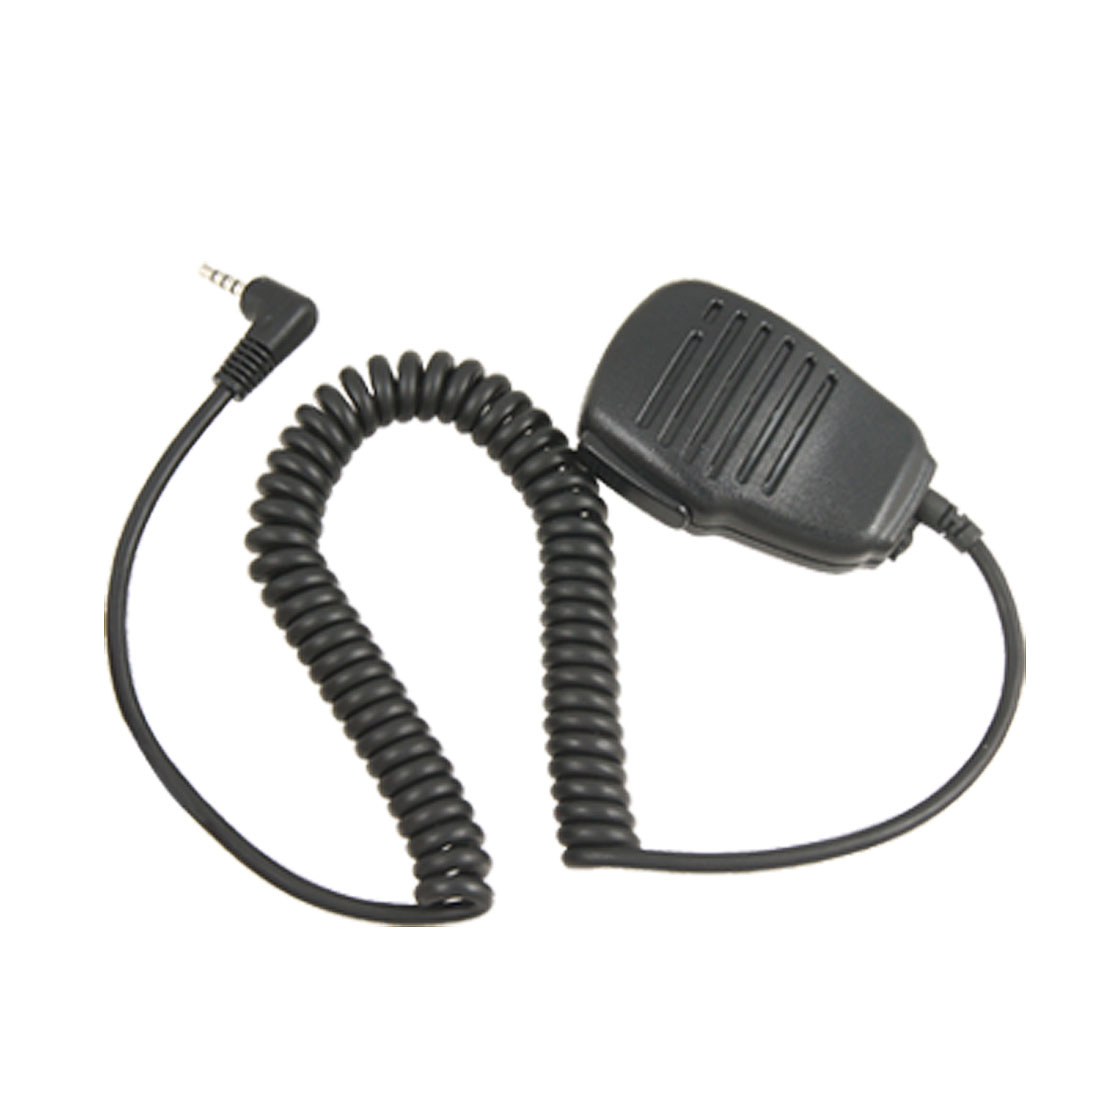 Unique Bargains Blk Walkie Talkie Handheld Speaker Mic for Yaesu VX351